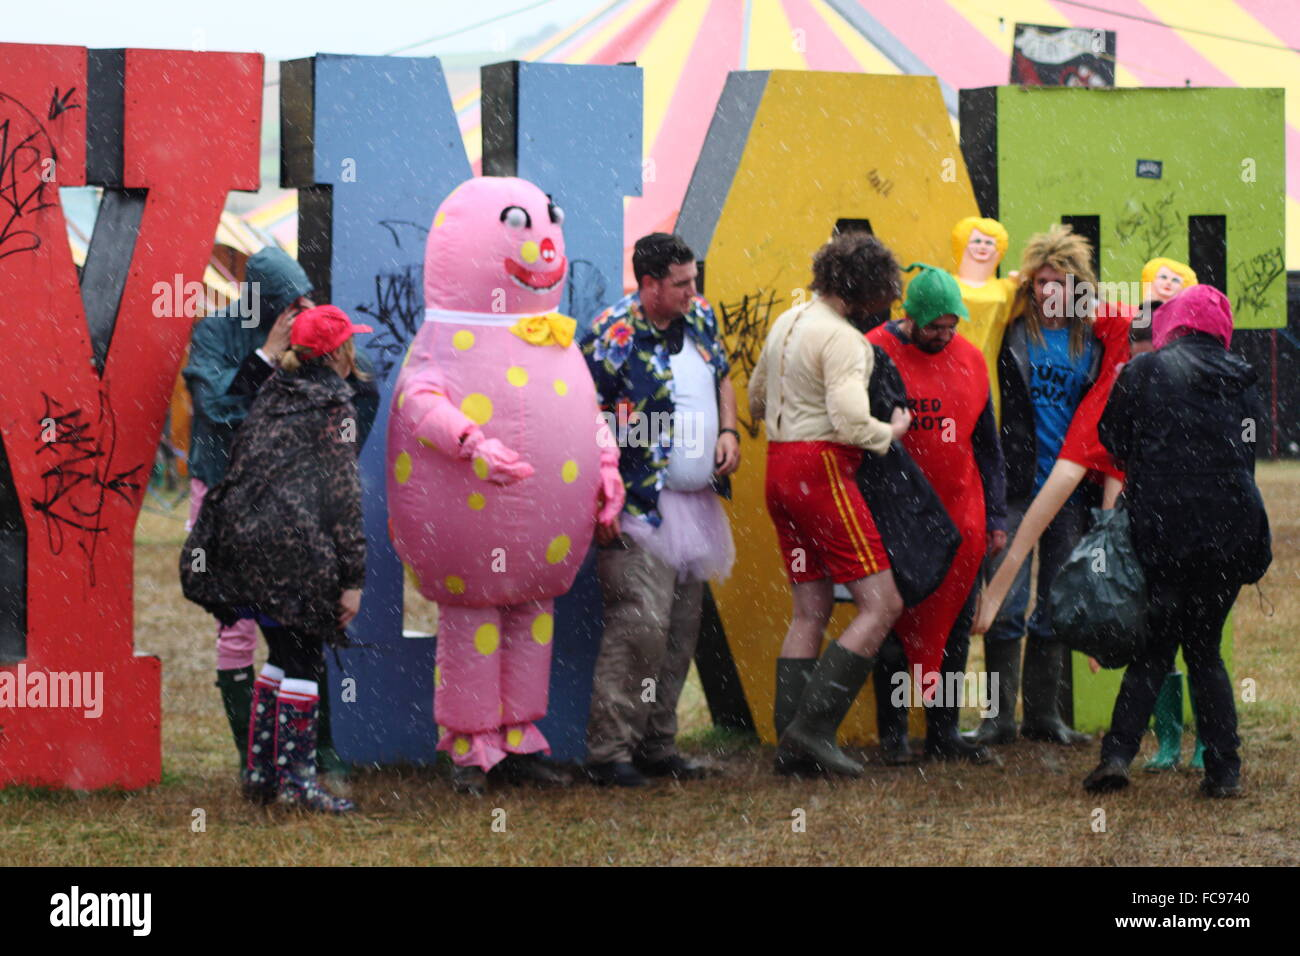 Festival goers take part in the  fancy dress day at the Y Not music festival in the Peak District, Derbyshire England - Stock Image